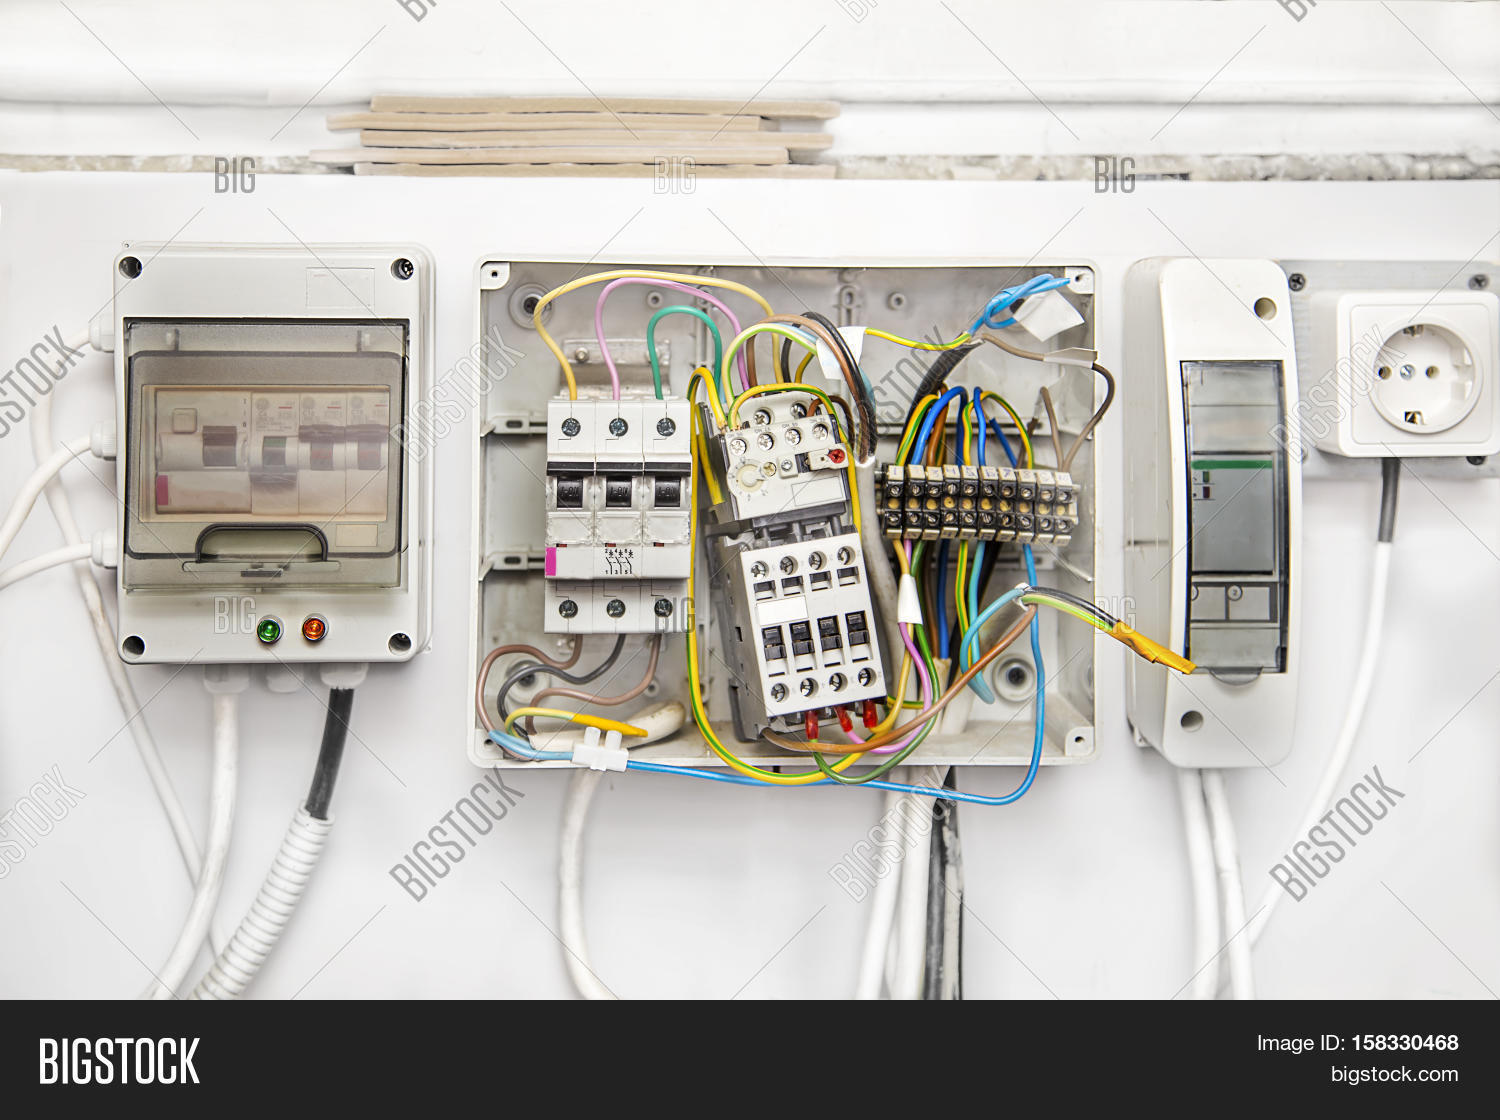 Breakers Switch Flat Image Photo Free Trial Bigstock Circuit Breaker Panel Diagram Also How To Wire A Fuse Electric Box Electrical With Wires Meter In